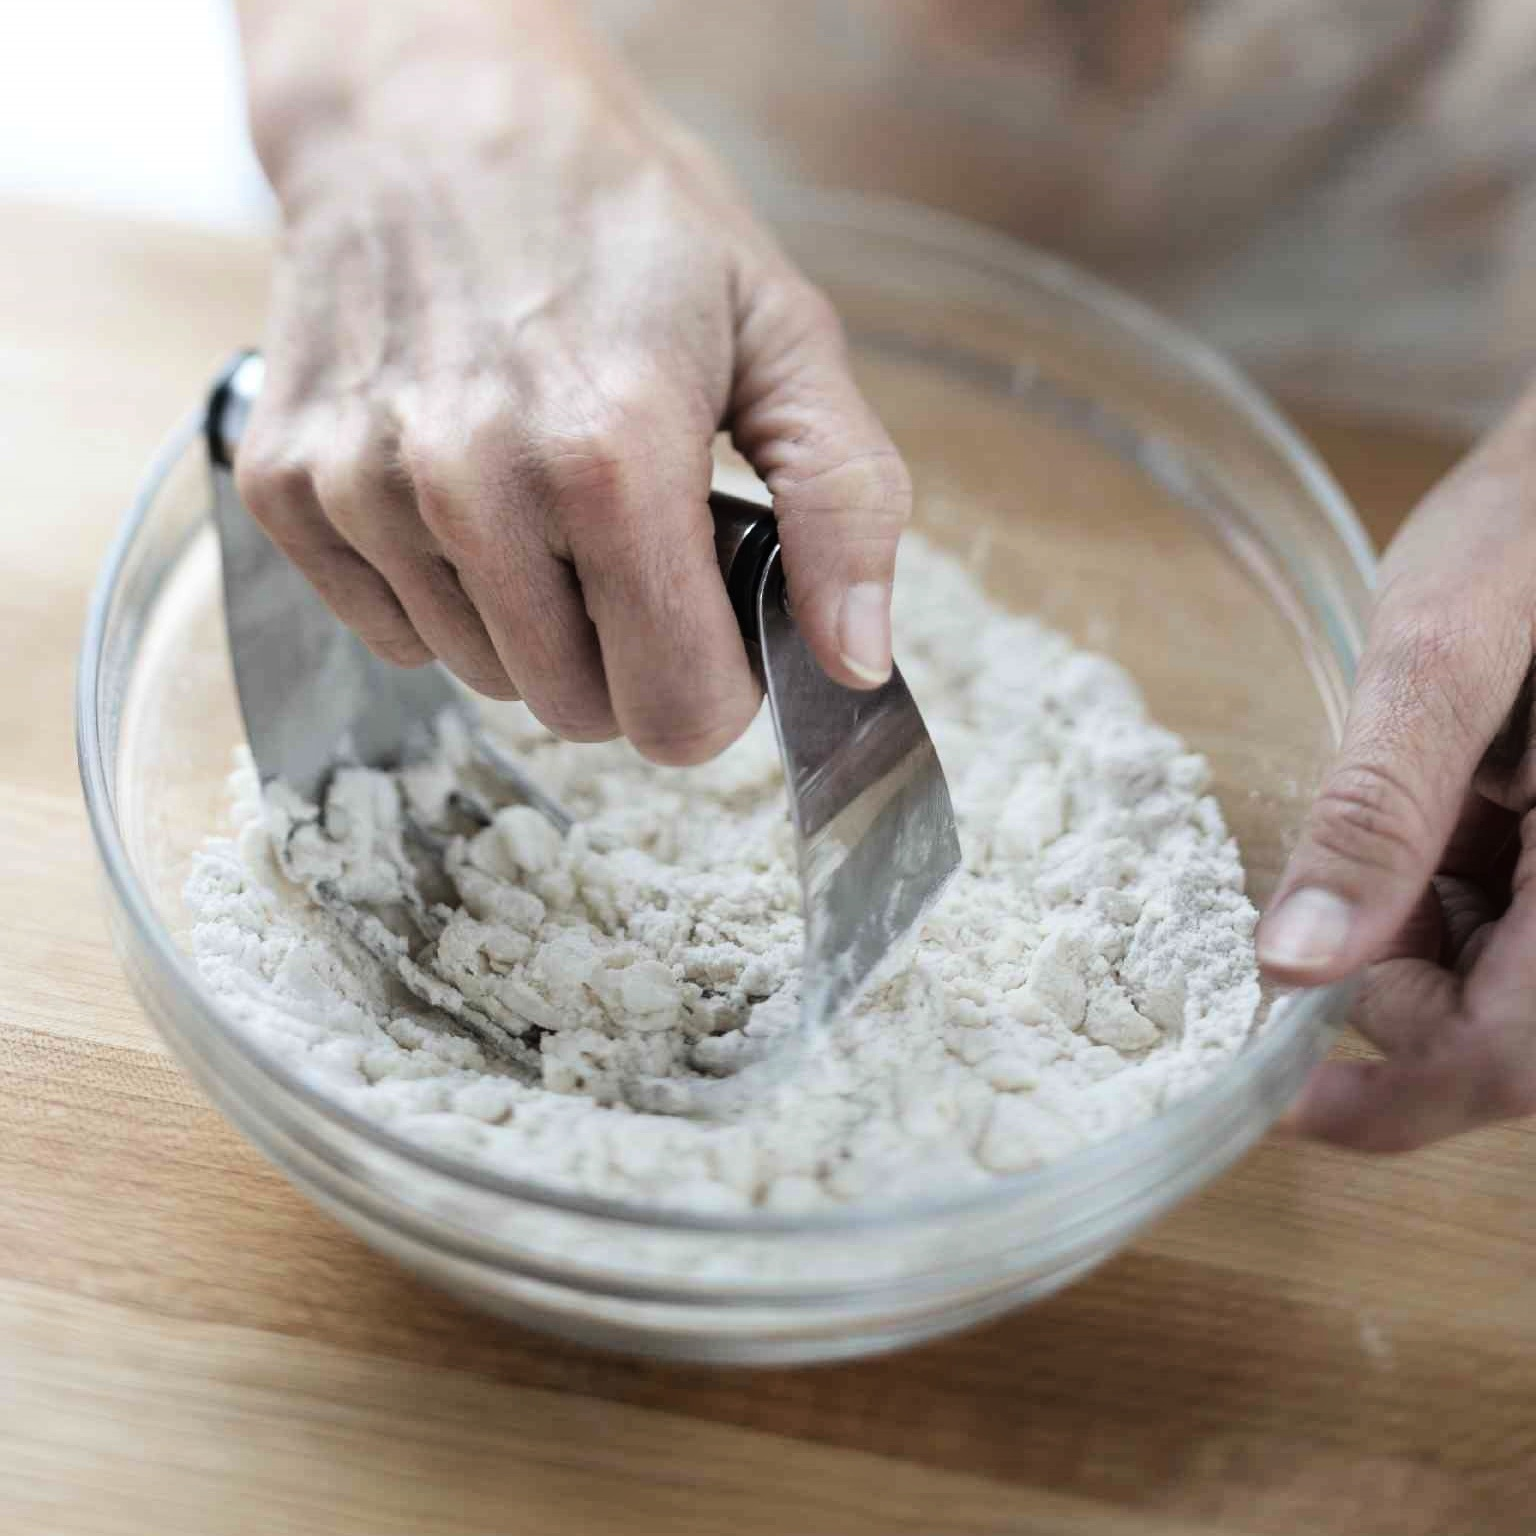 cutting fat into flour with a pastry cutter